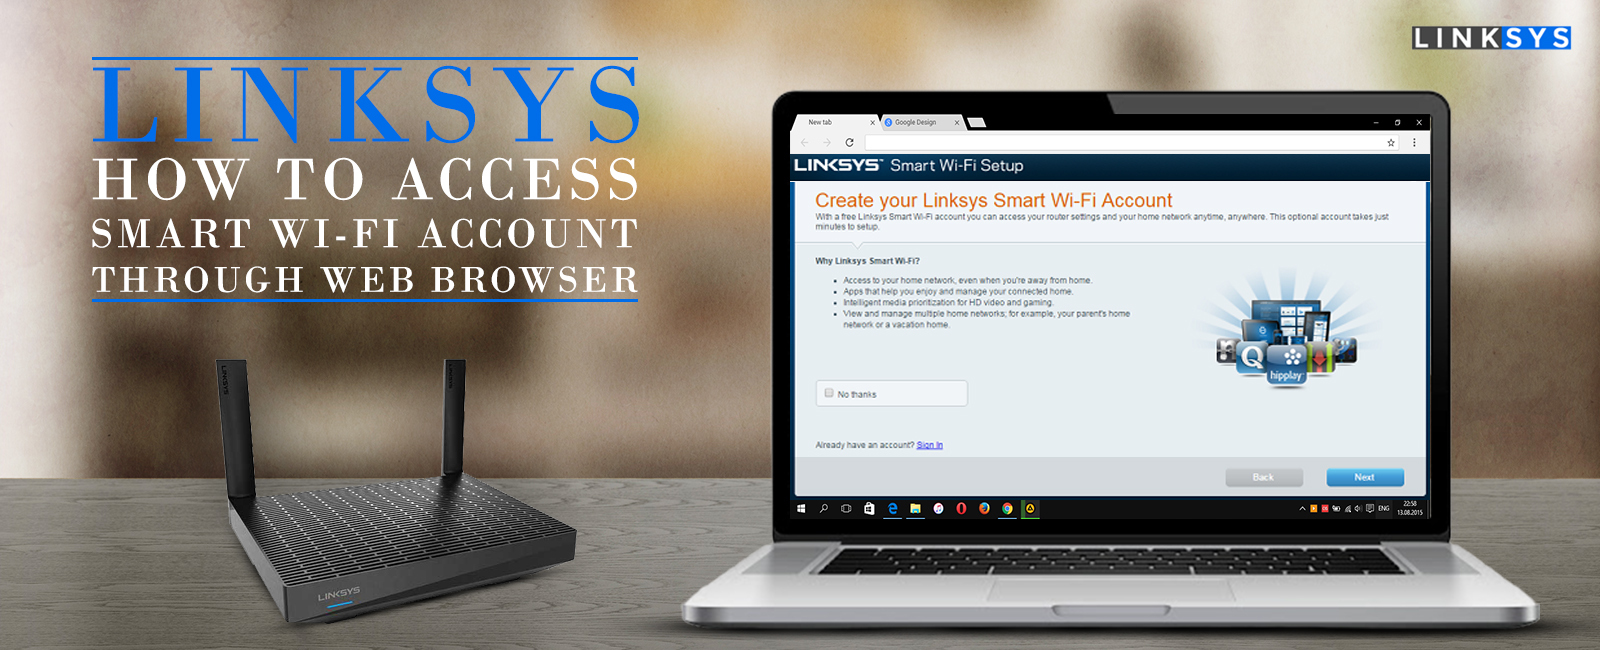 How to access Linksys smart wifi account through browser